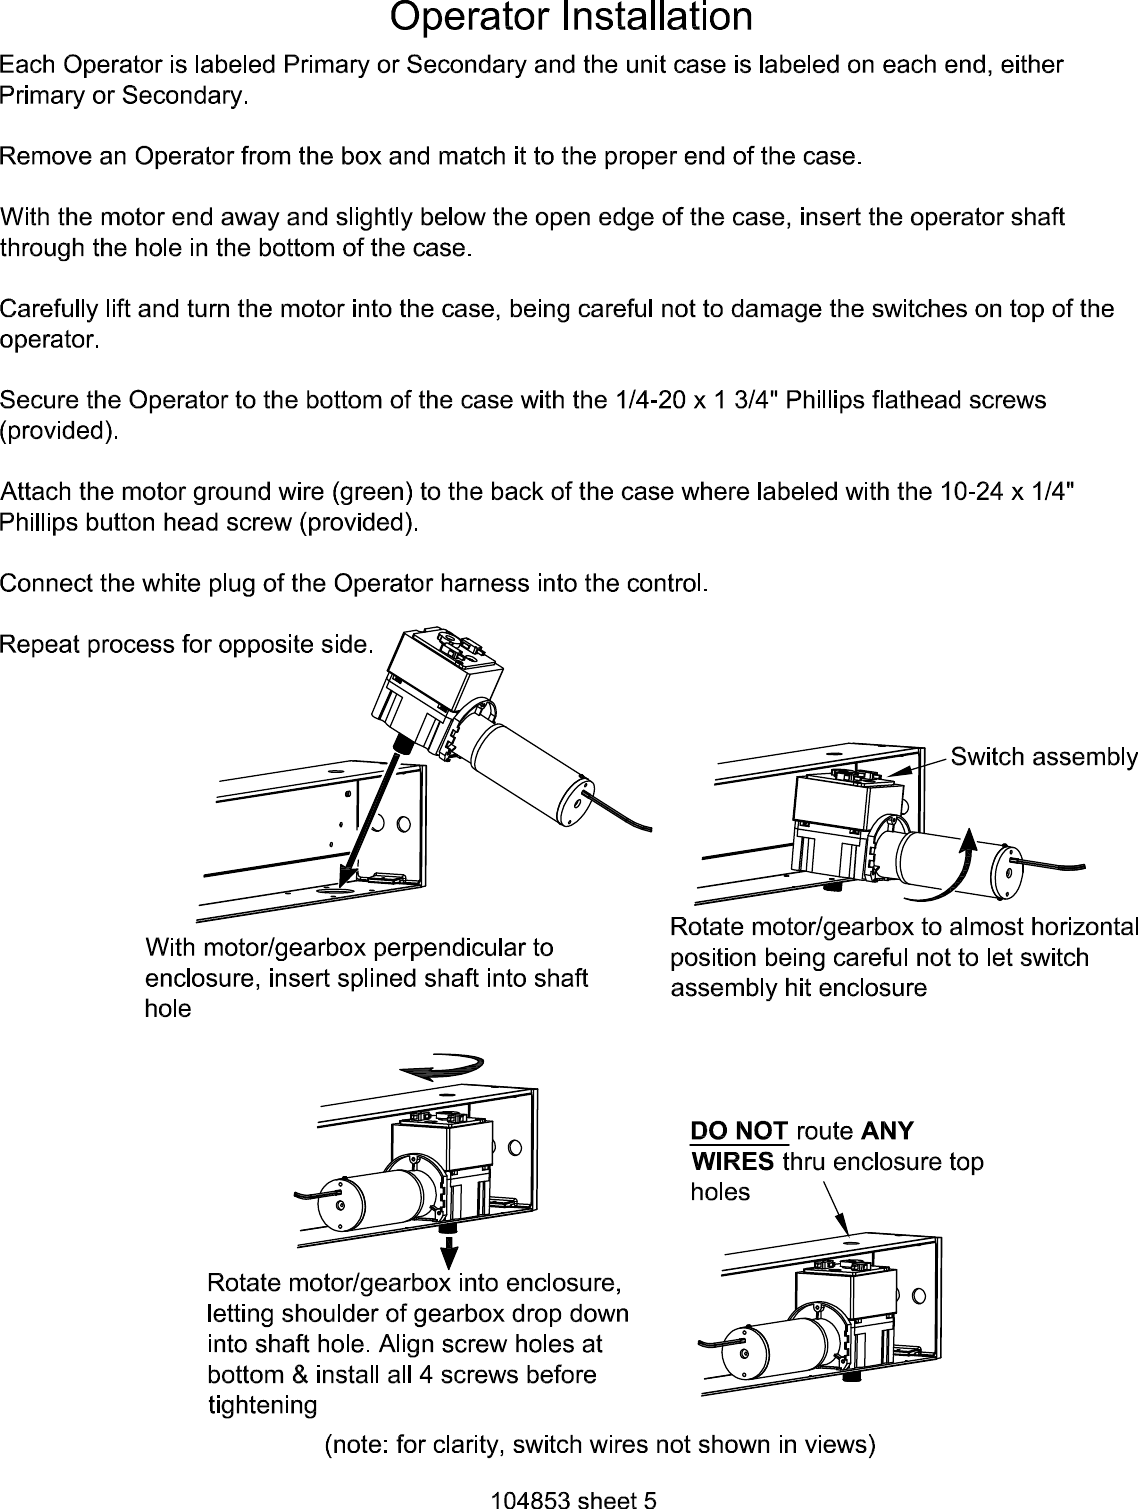 Detex R Twin Pull Style Ao19 2 Low Energy Automatic Door Operator Wiring Diagrams Page 5 Of 10